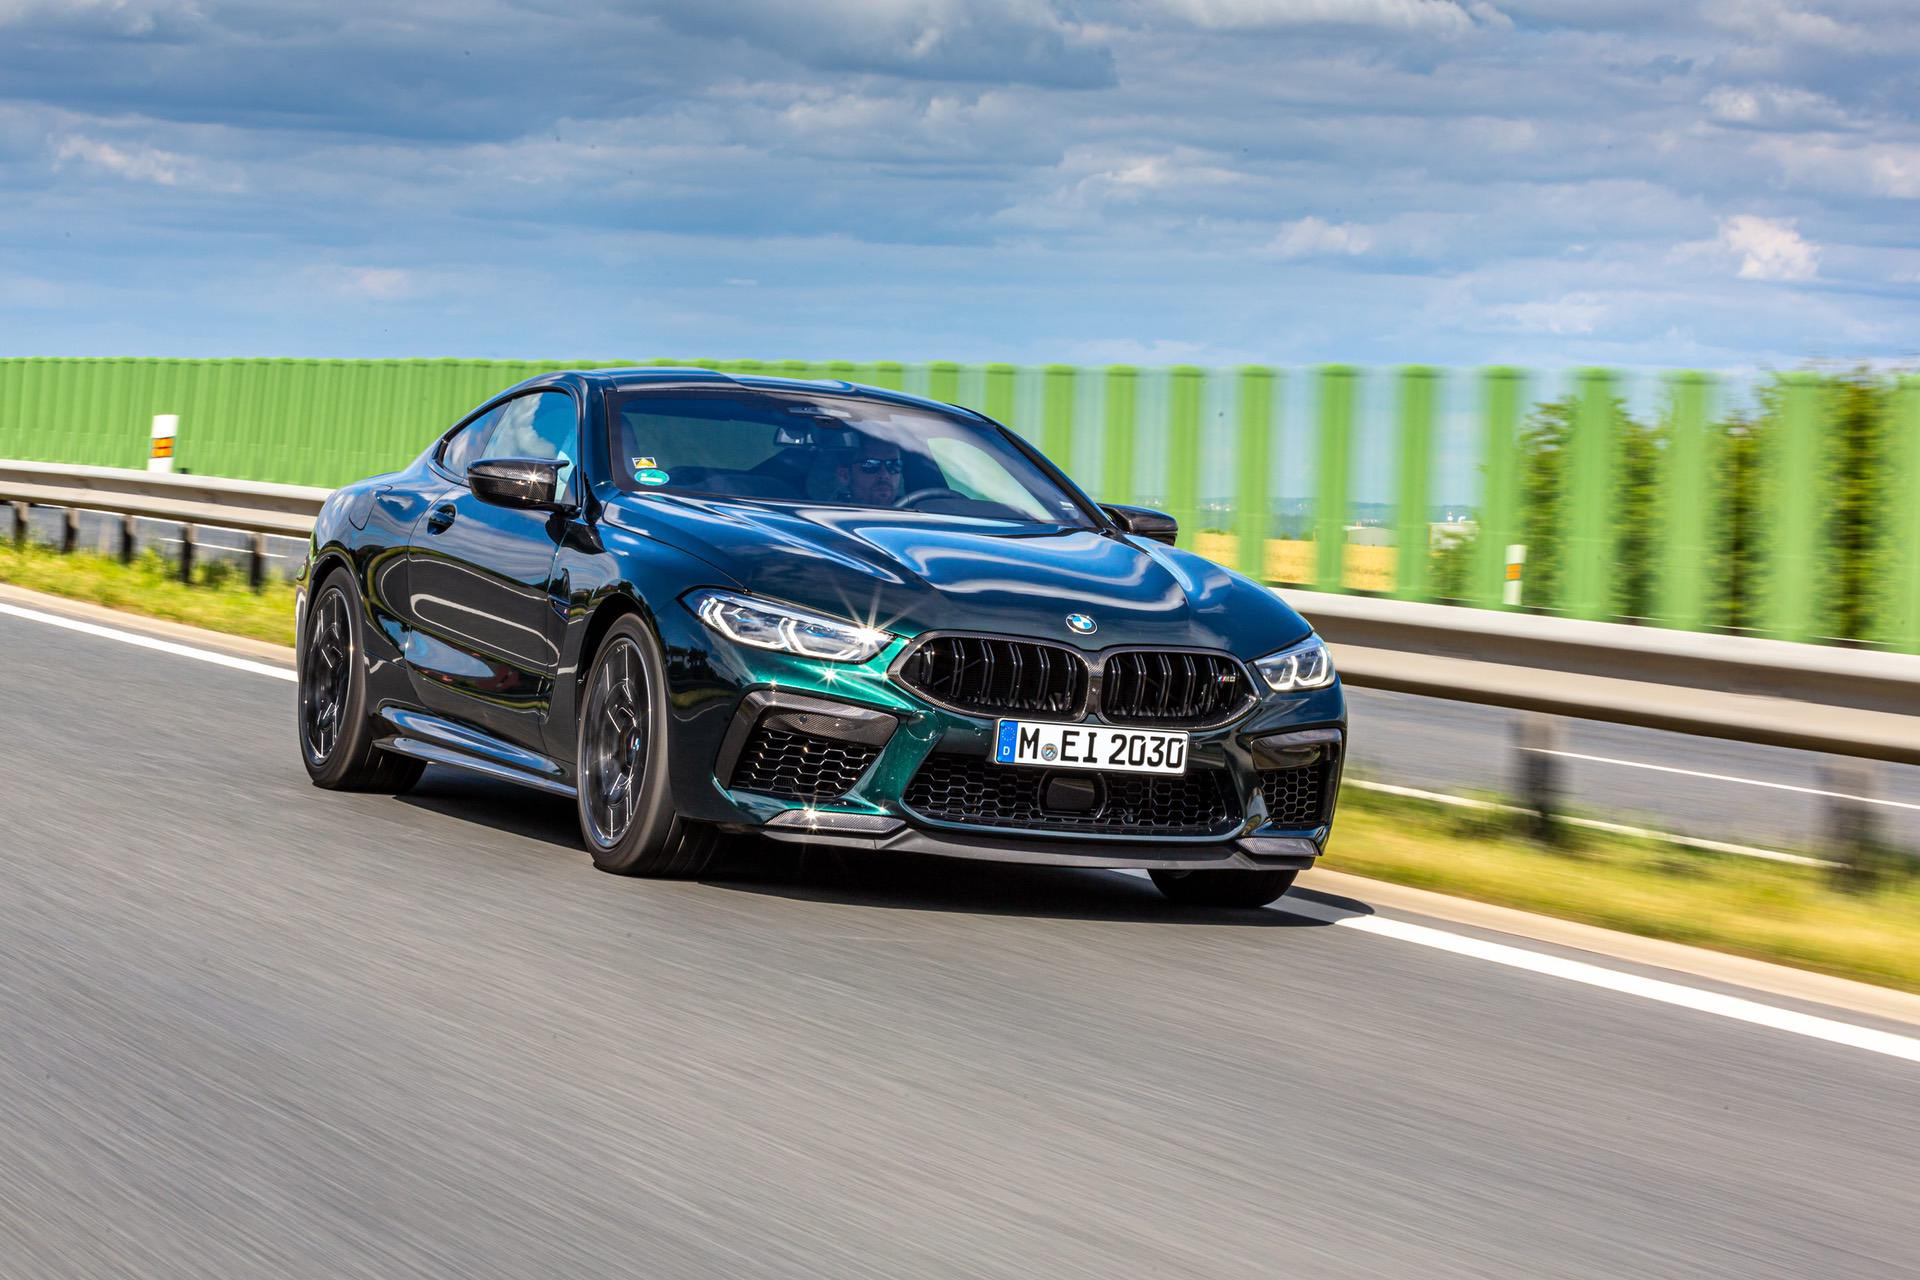 2020 bmw m8 competition oxford green 30